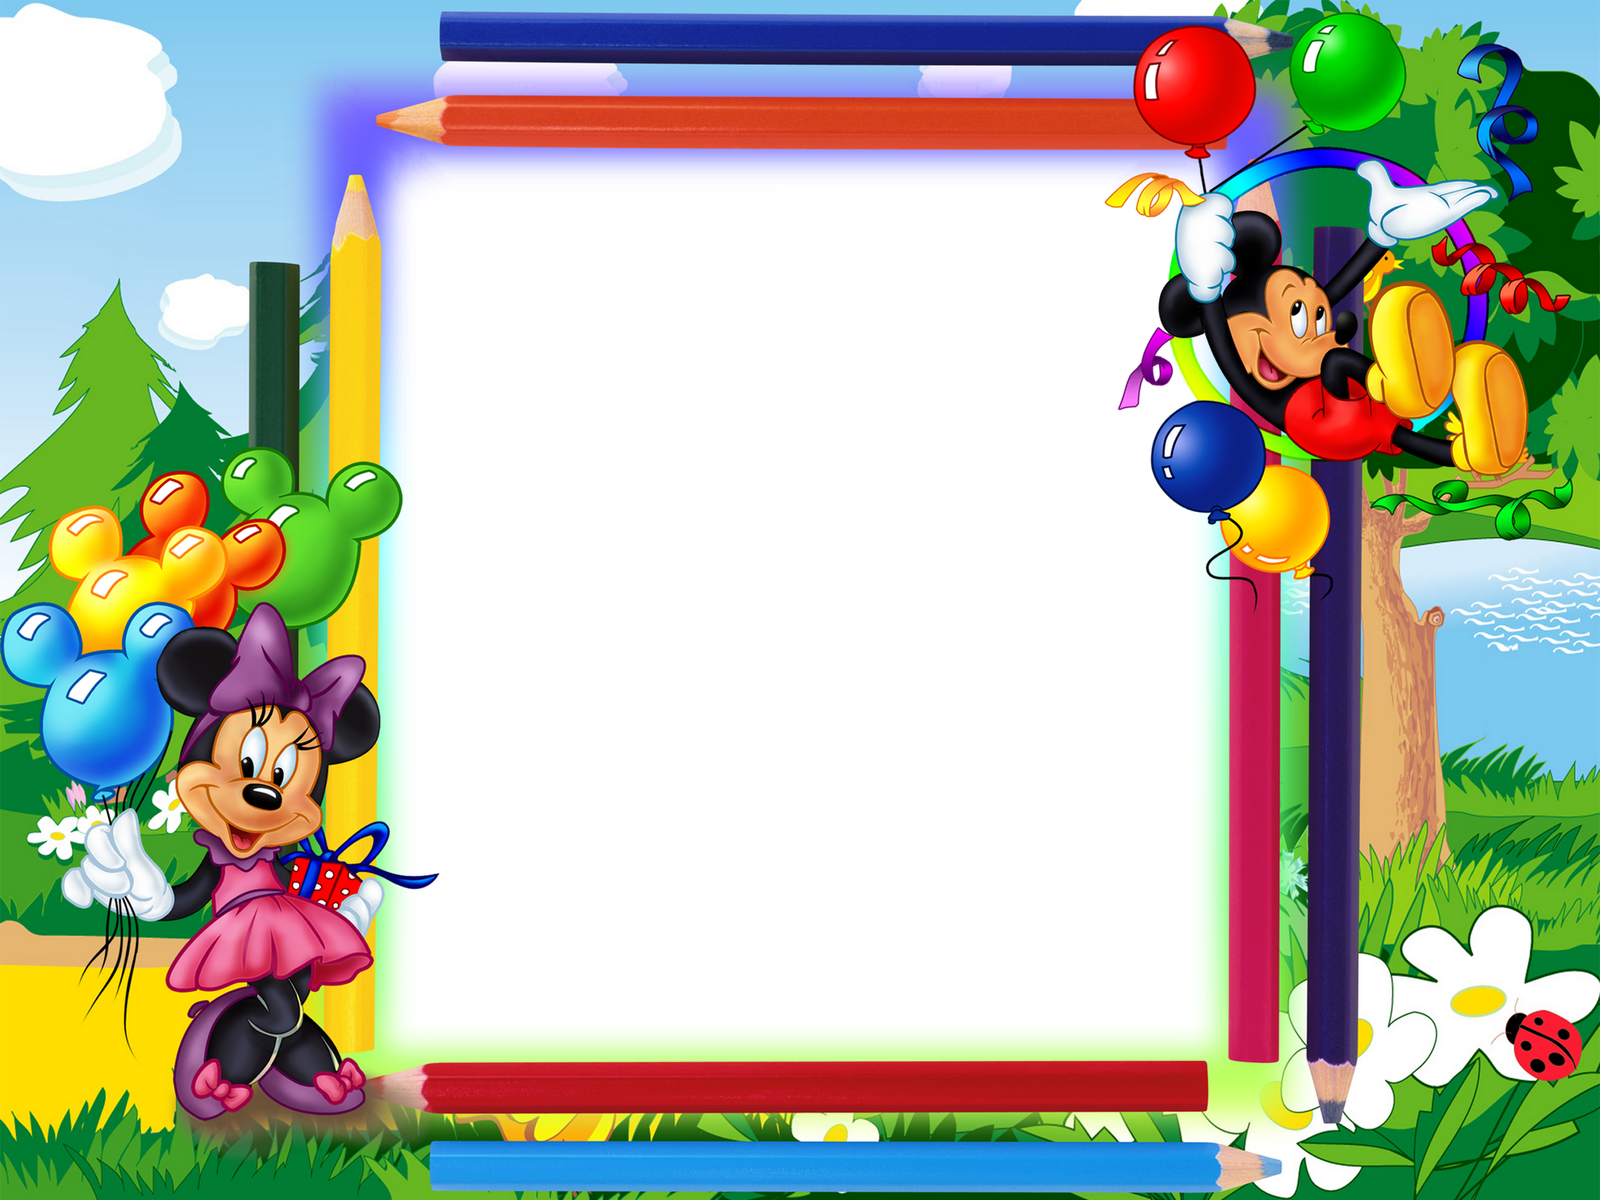 Mickey Mouse Borders Frames Free Download | Joy Studio Design Gallery ...